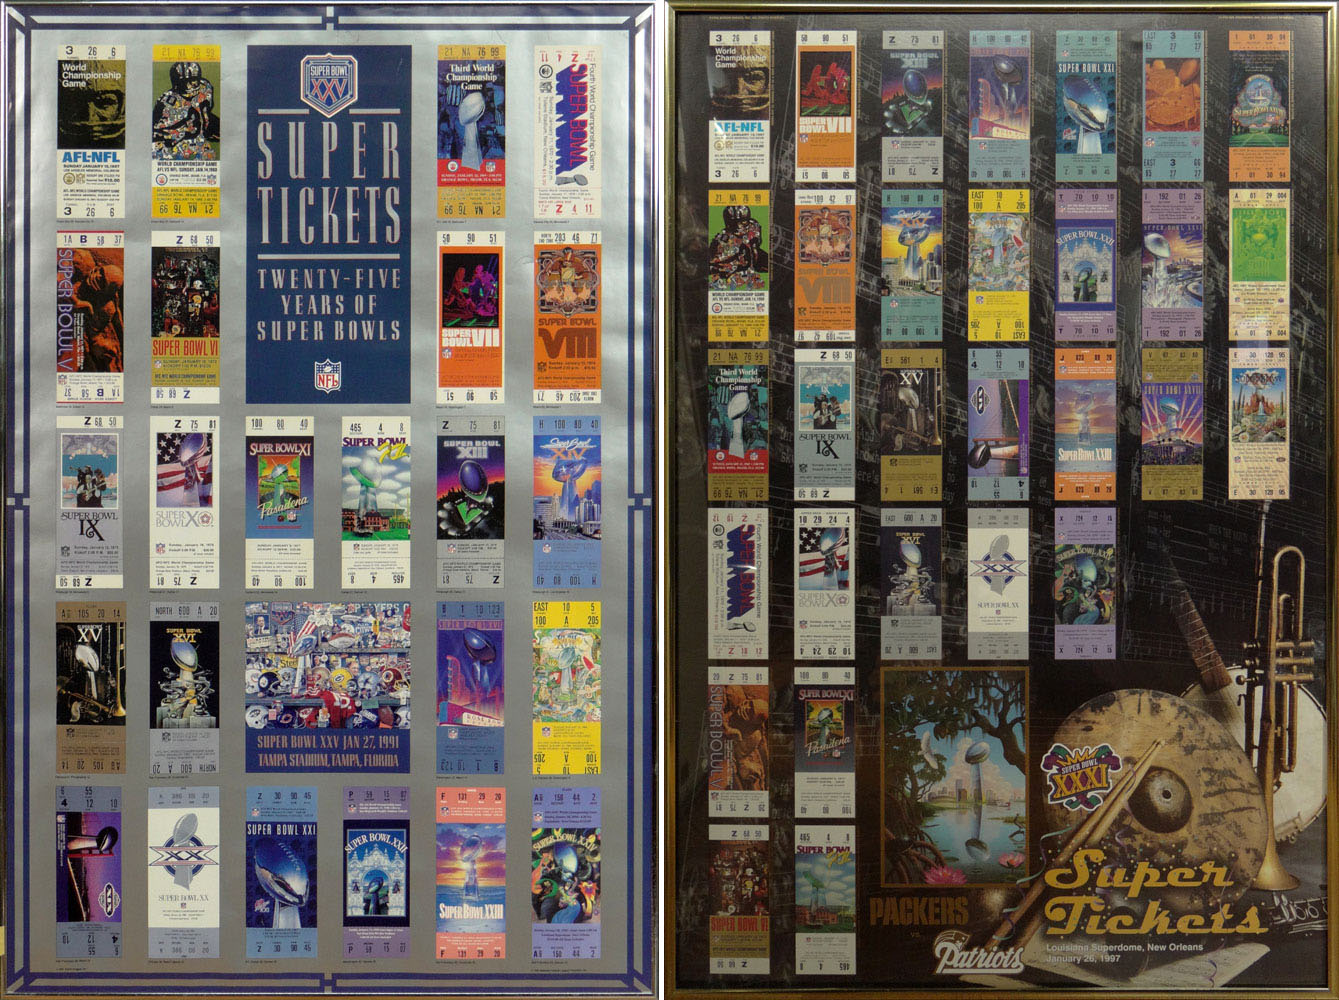 two 2 super bowl tickets framed posters 1997 packers vs